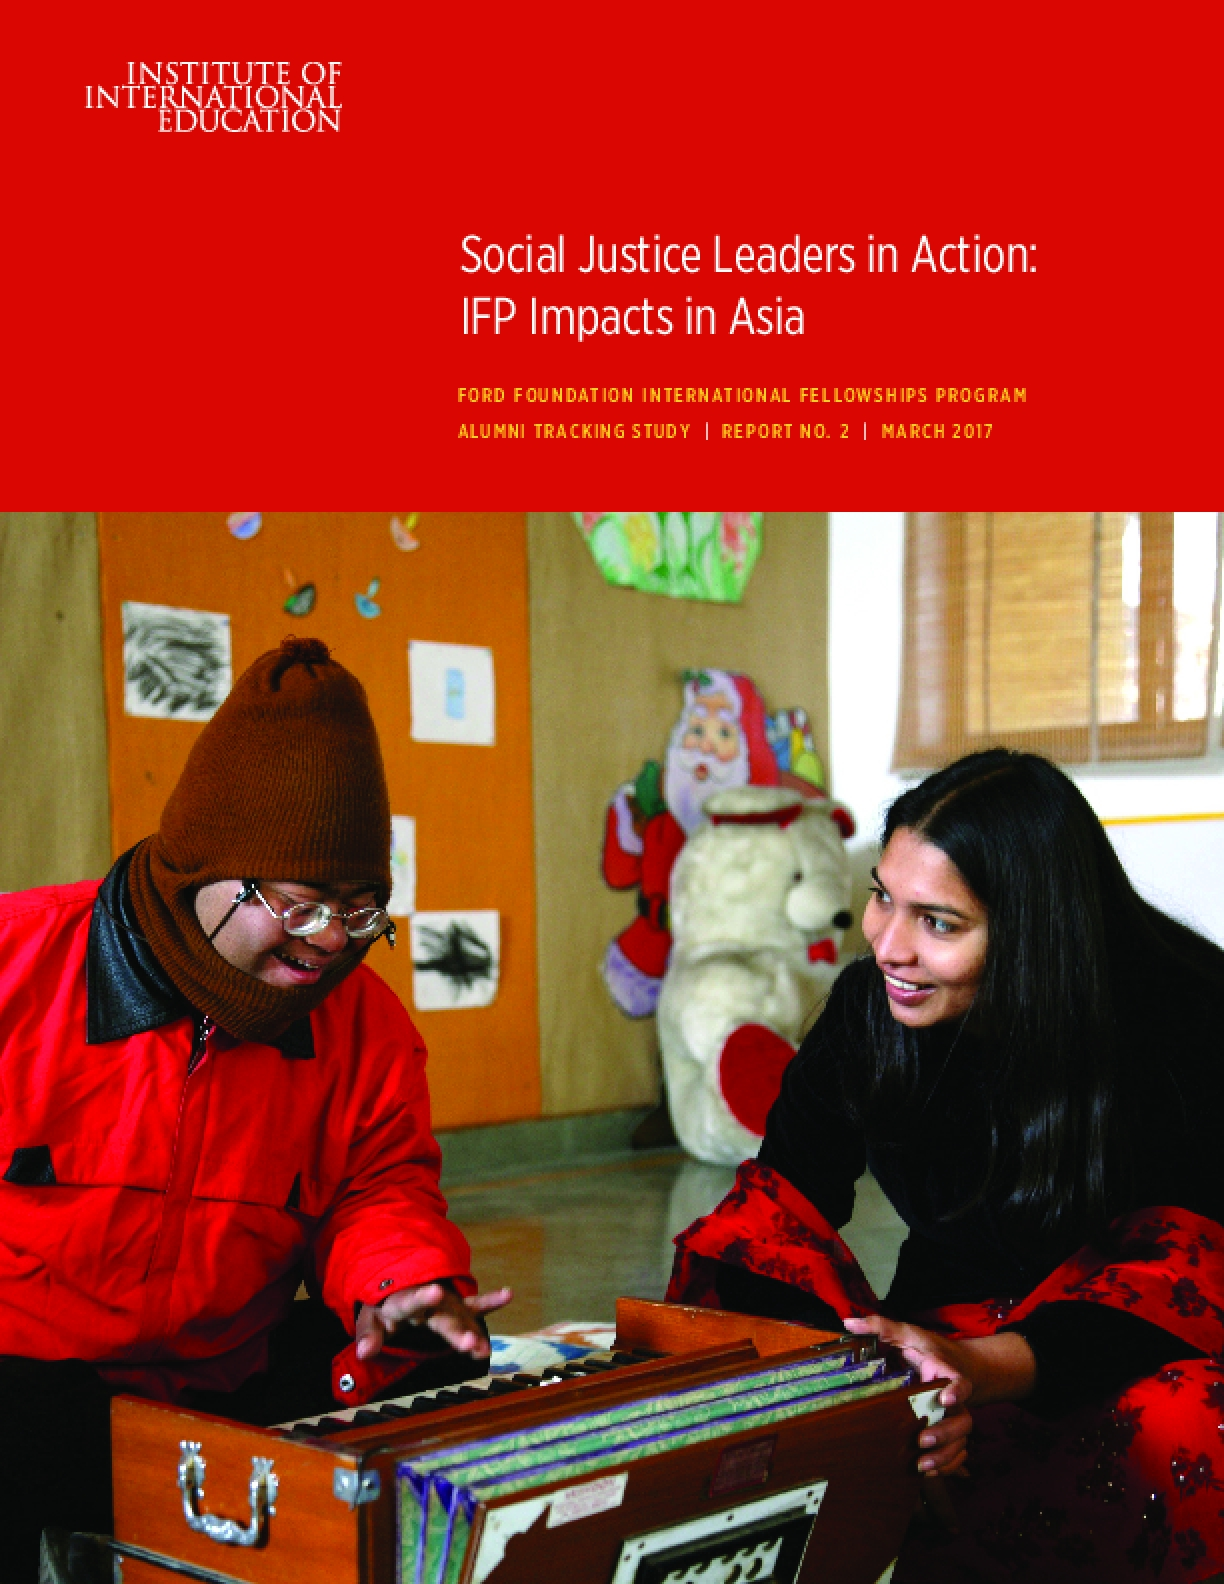 Social Justice Leaders in Action: IFP Impacts in Asia